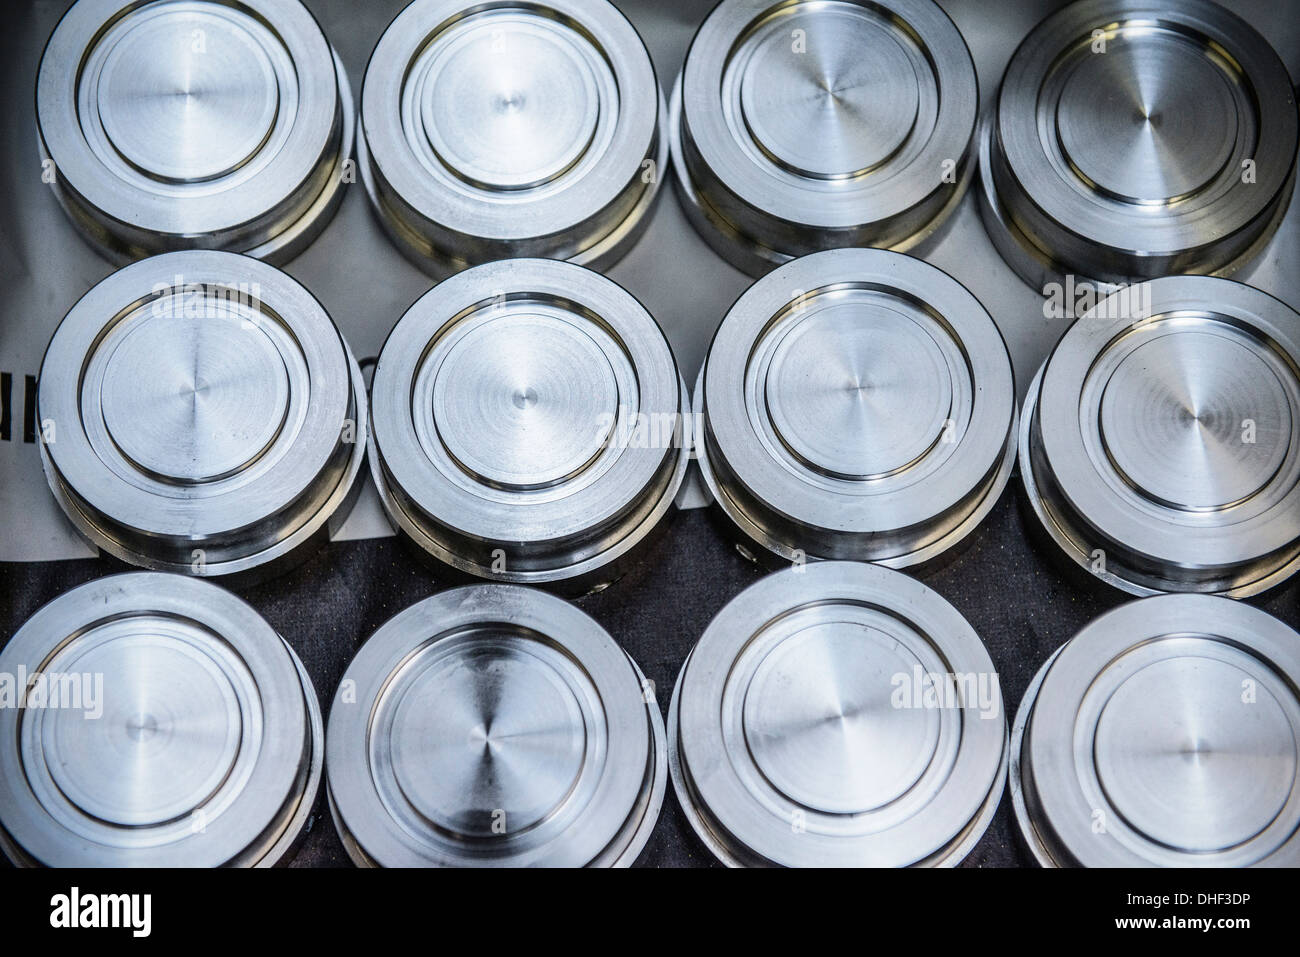 Stacks of raw and unworked steel discs in factory, overhead view - Stock Image